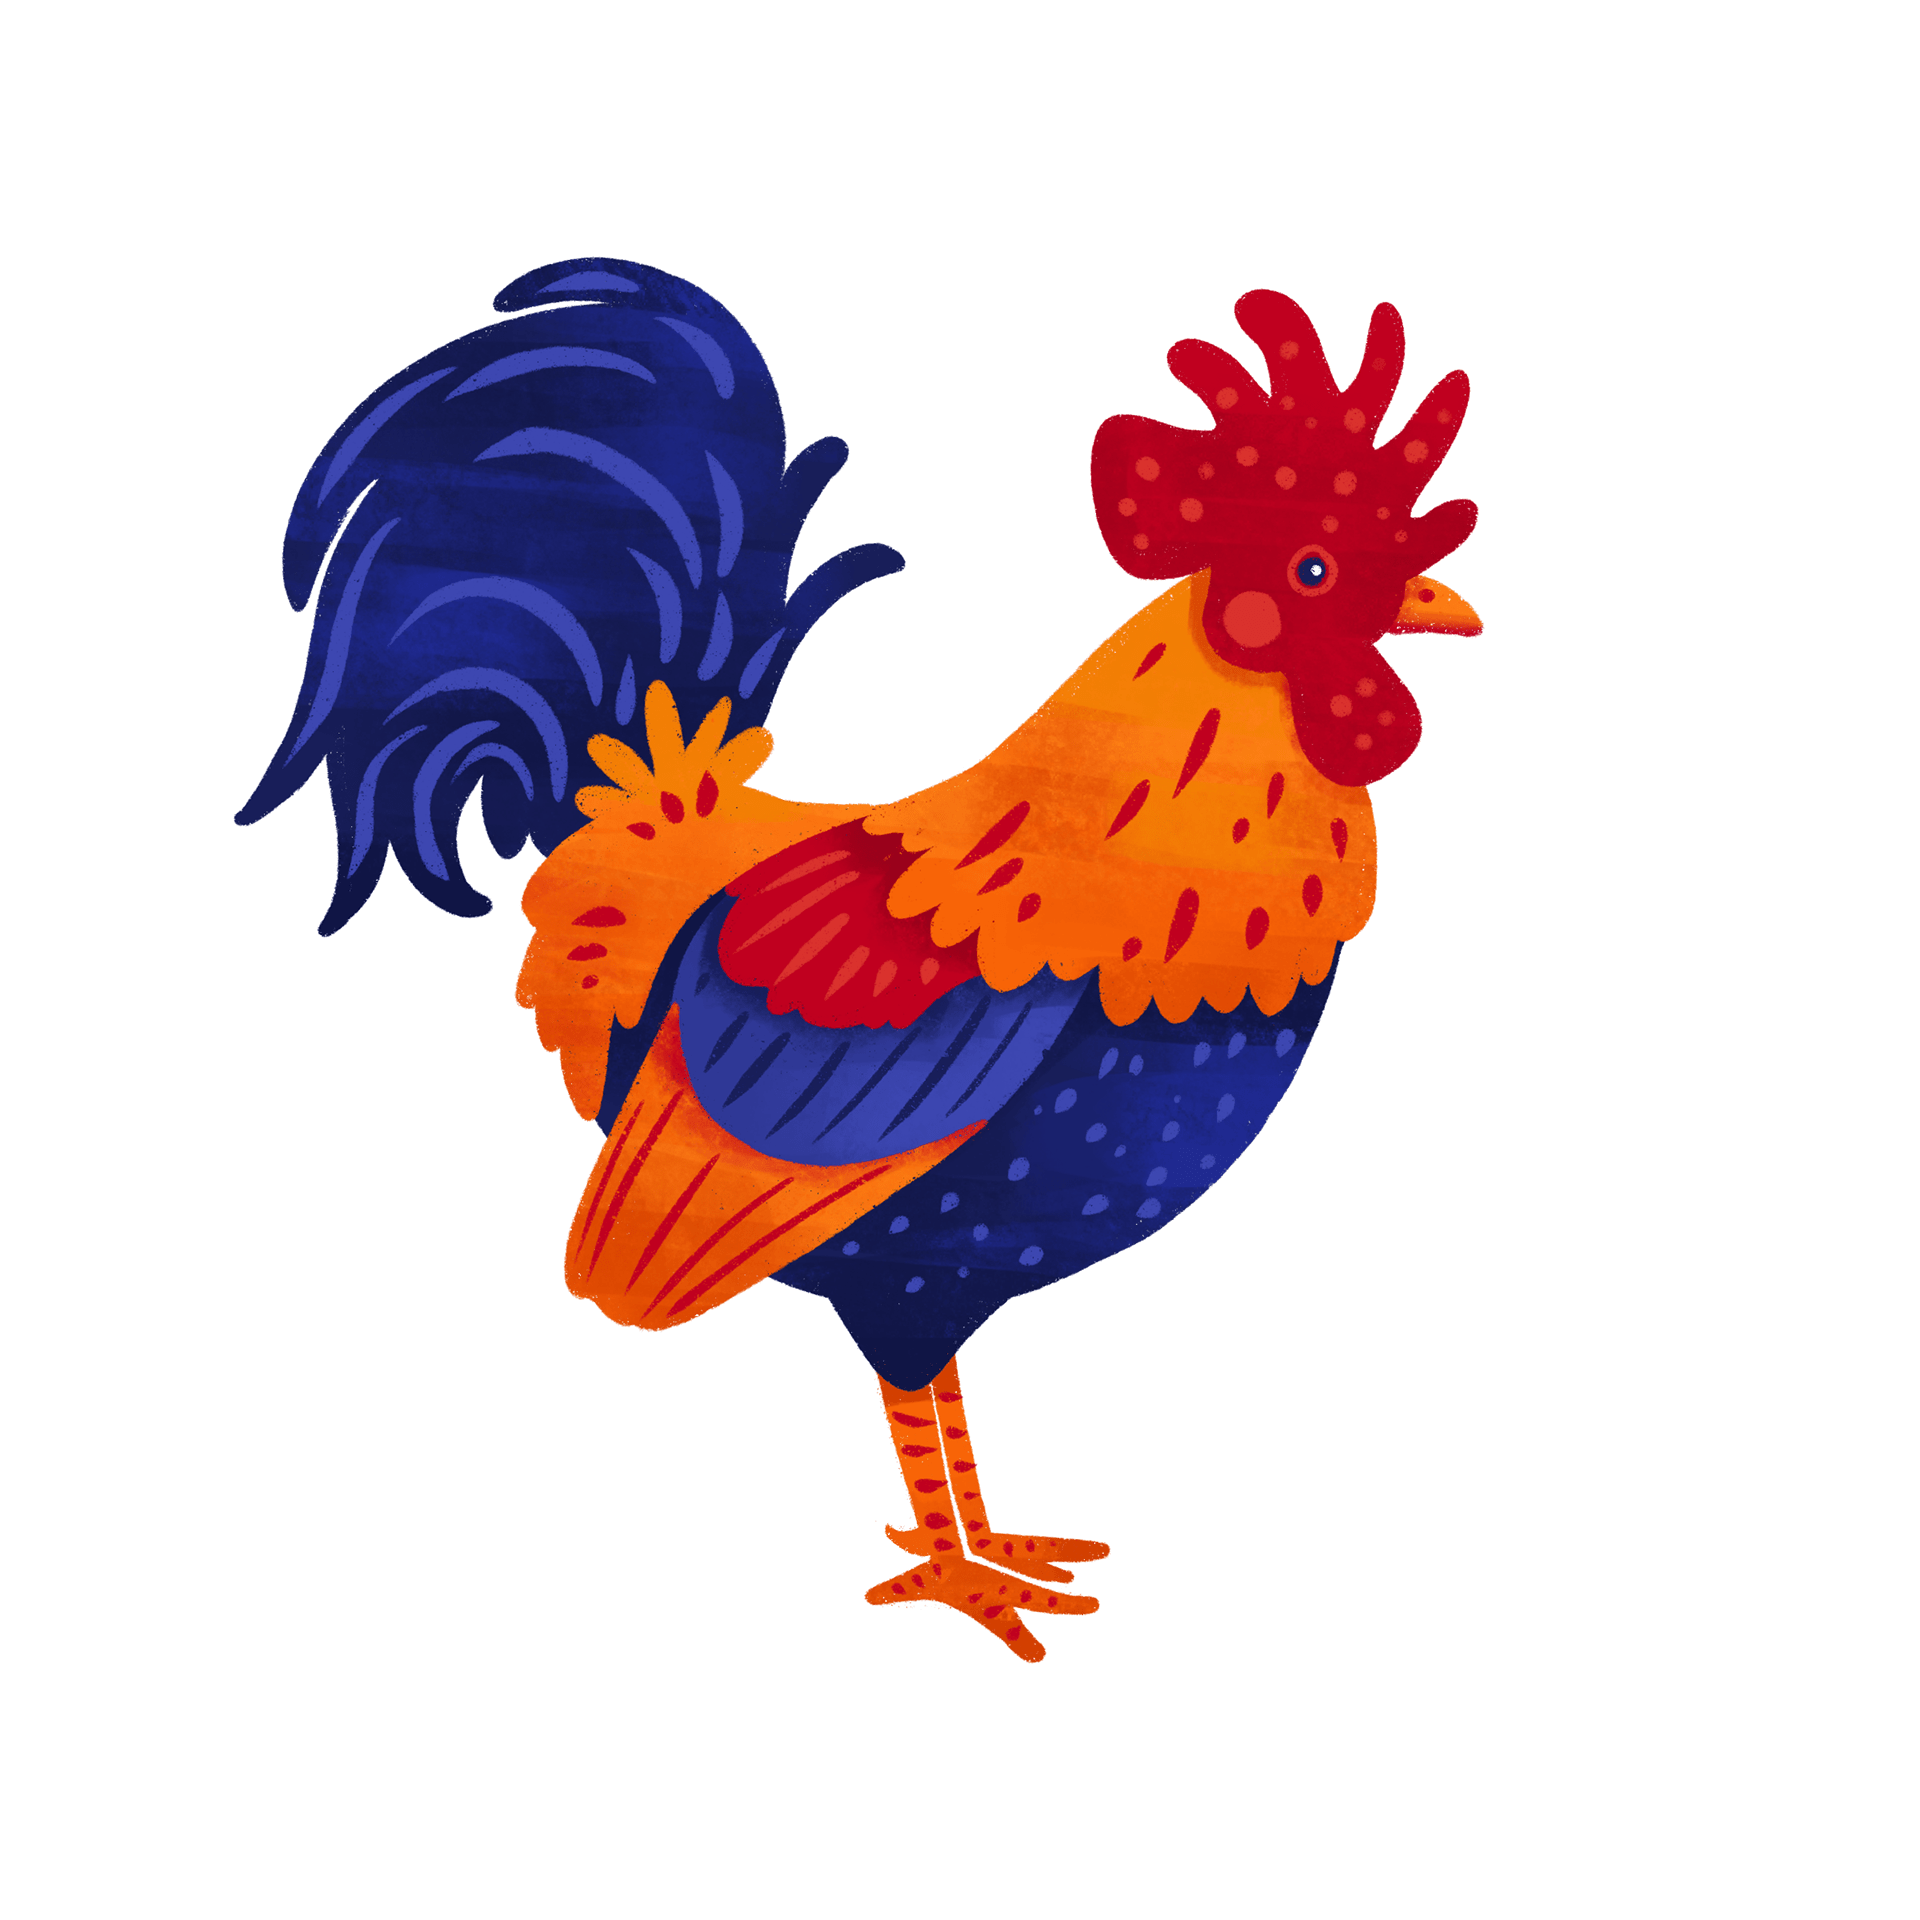 Rooster spot illustration done with procreate.